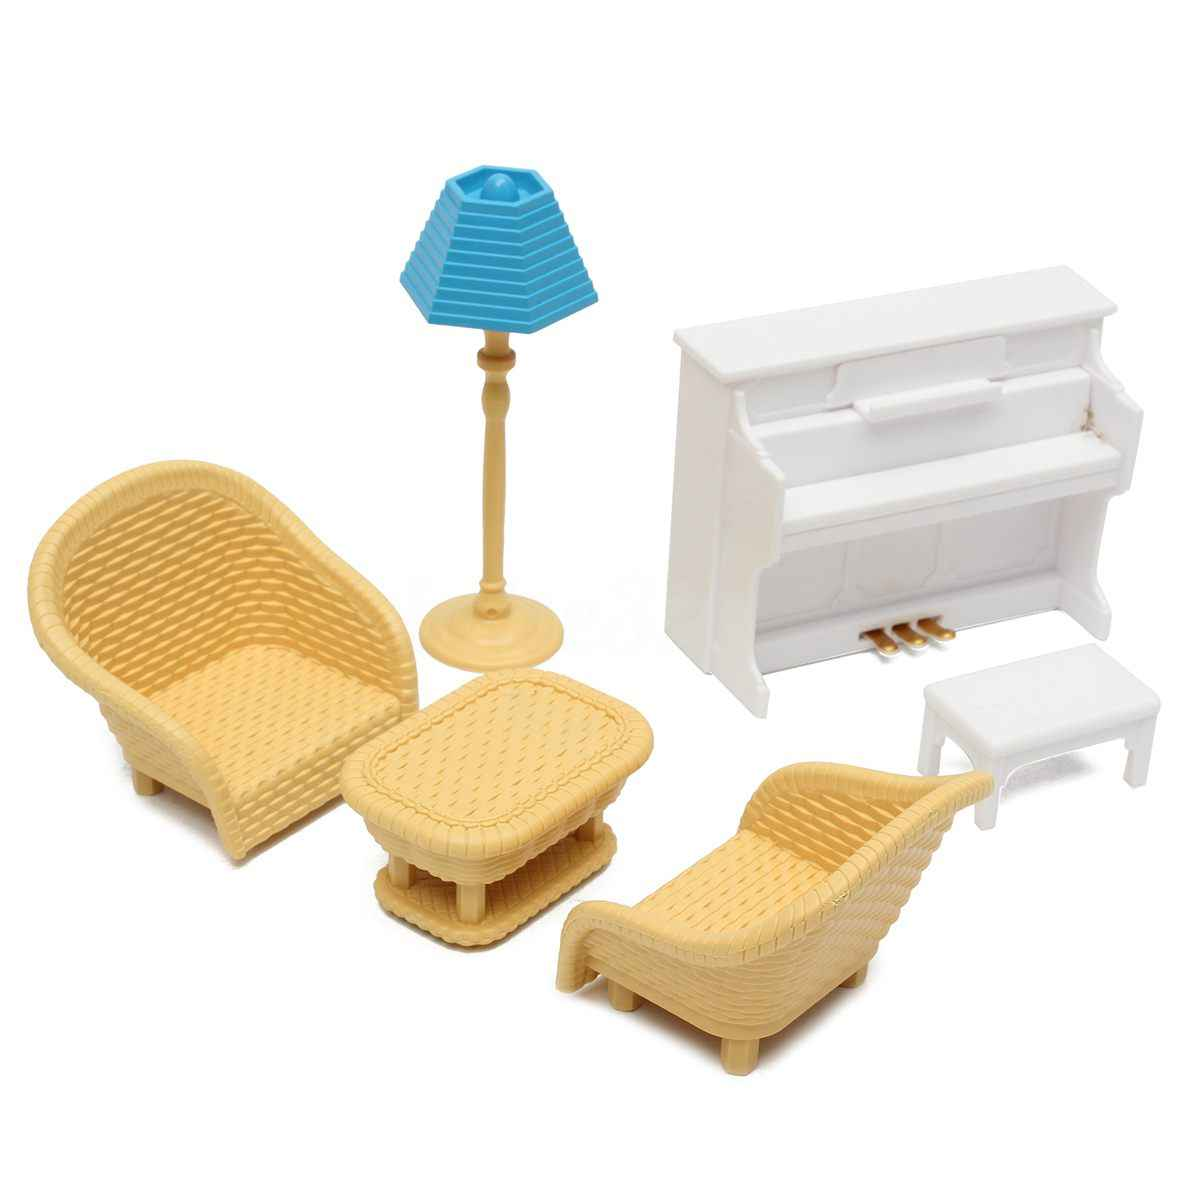 Furniture Toys Dollhouse Sofa Piano Table Miniature Furniture Sets For Sylvanian Family Accessories Kids Gift Toys